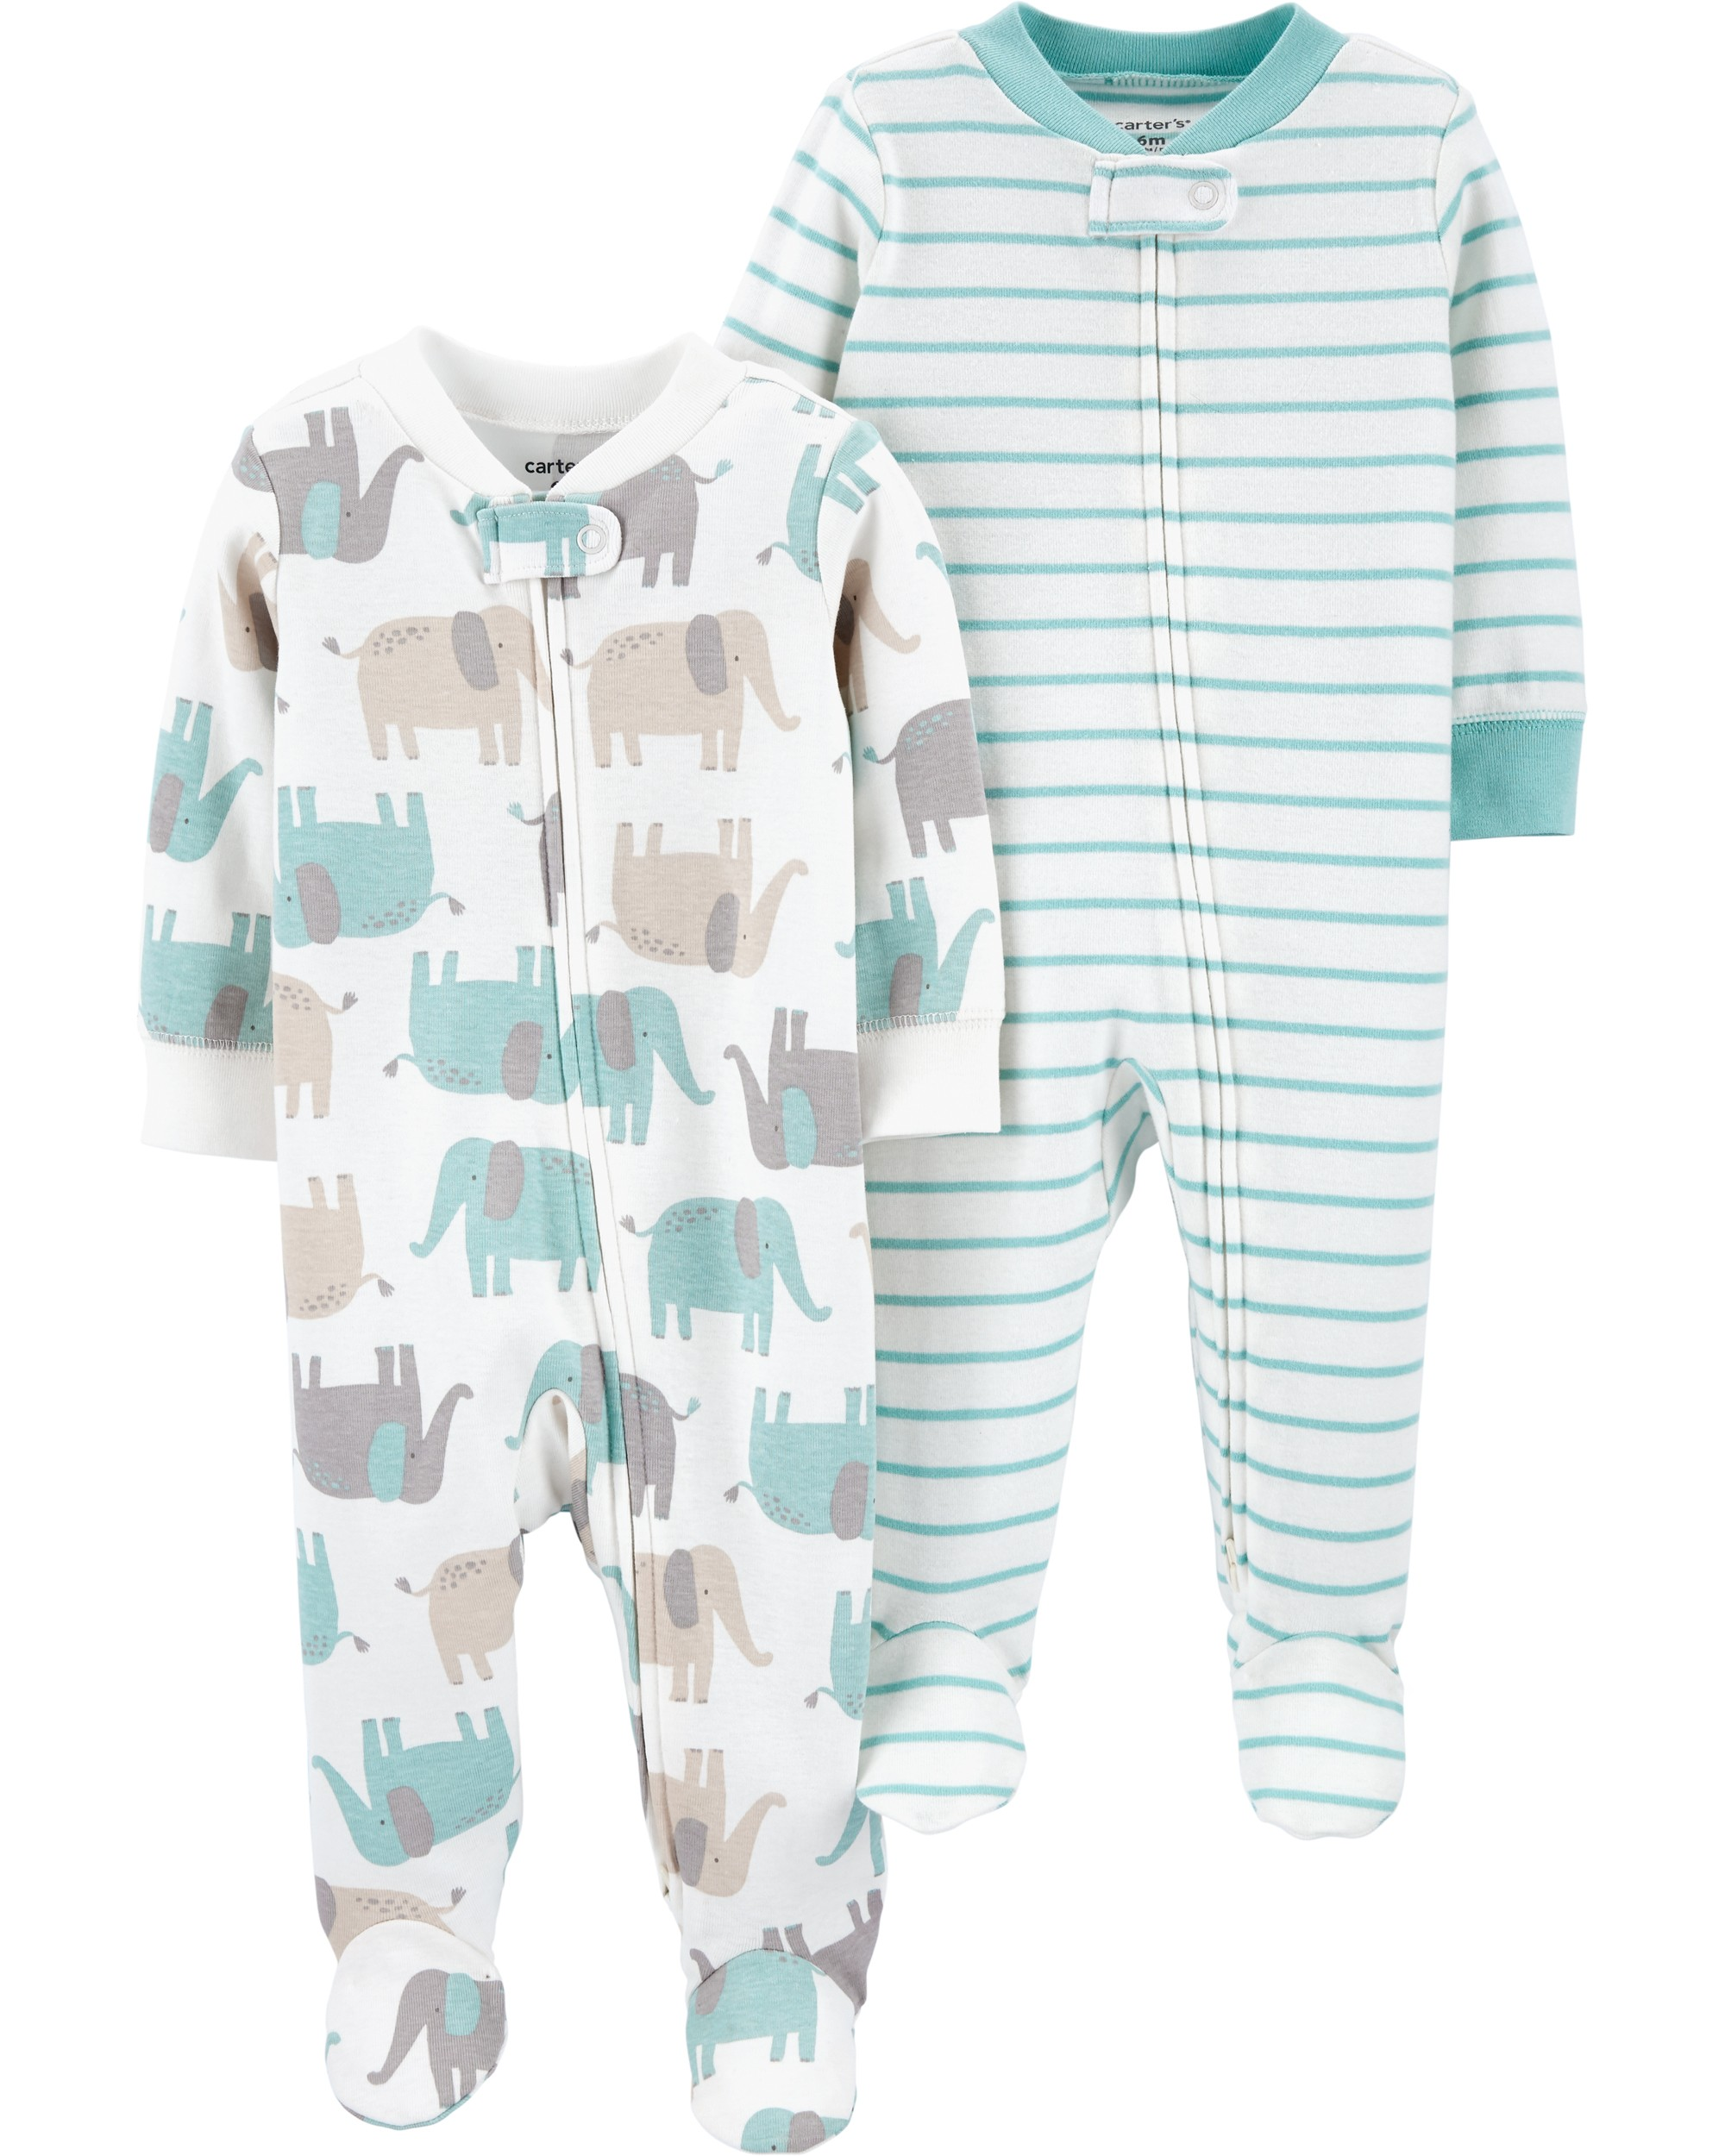 CARTERS Overal na zip SleepPlays Mix neutrál LBB 2 ks 6 m veľ. 68